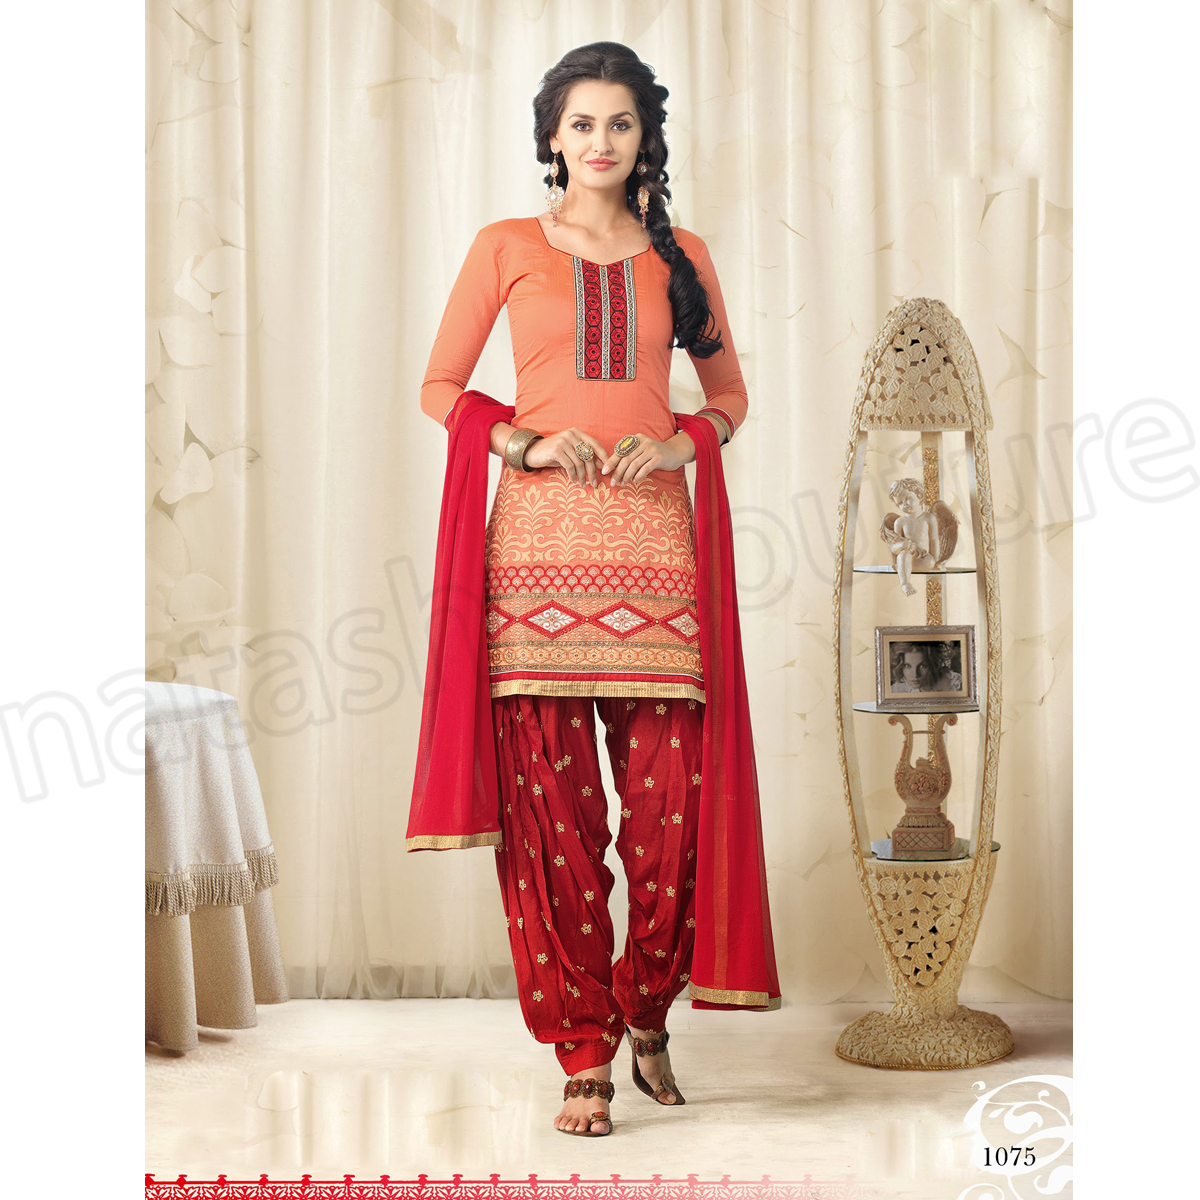 Latest Indian Patiala shalwar kameez fashion 2015-2016 (27)